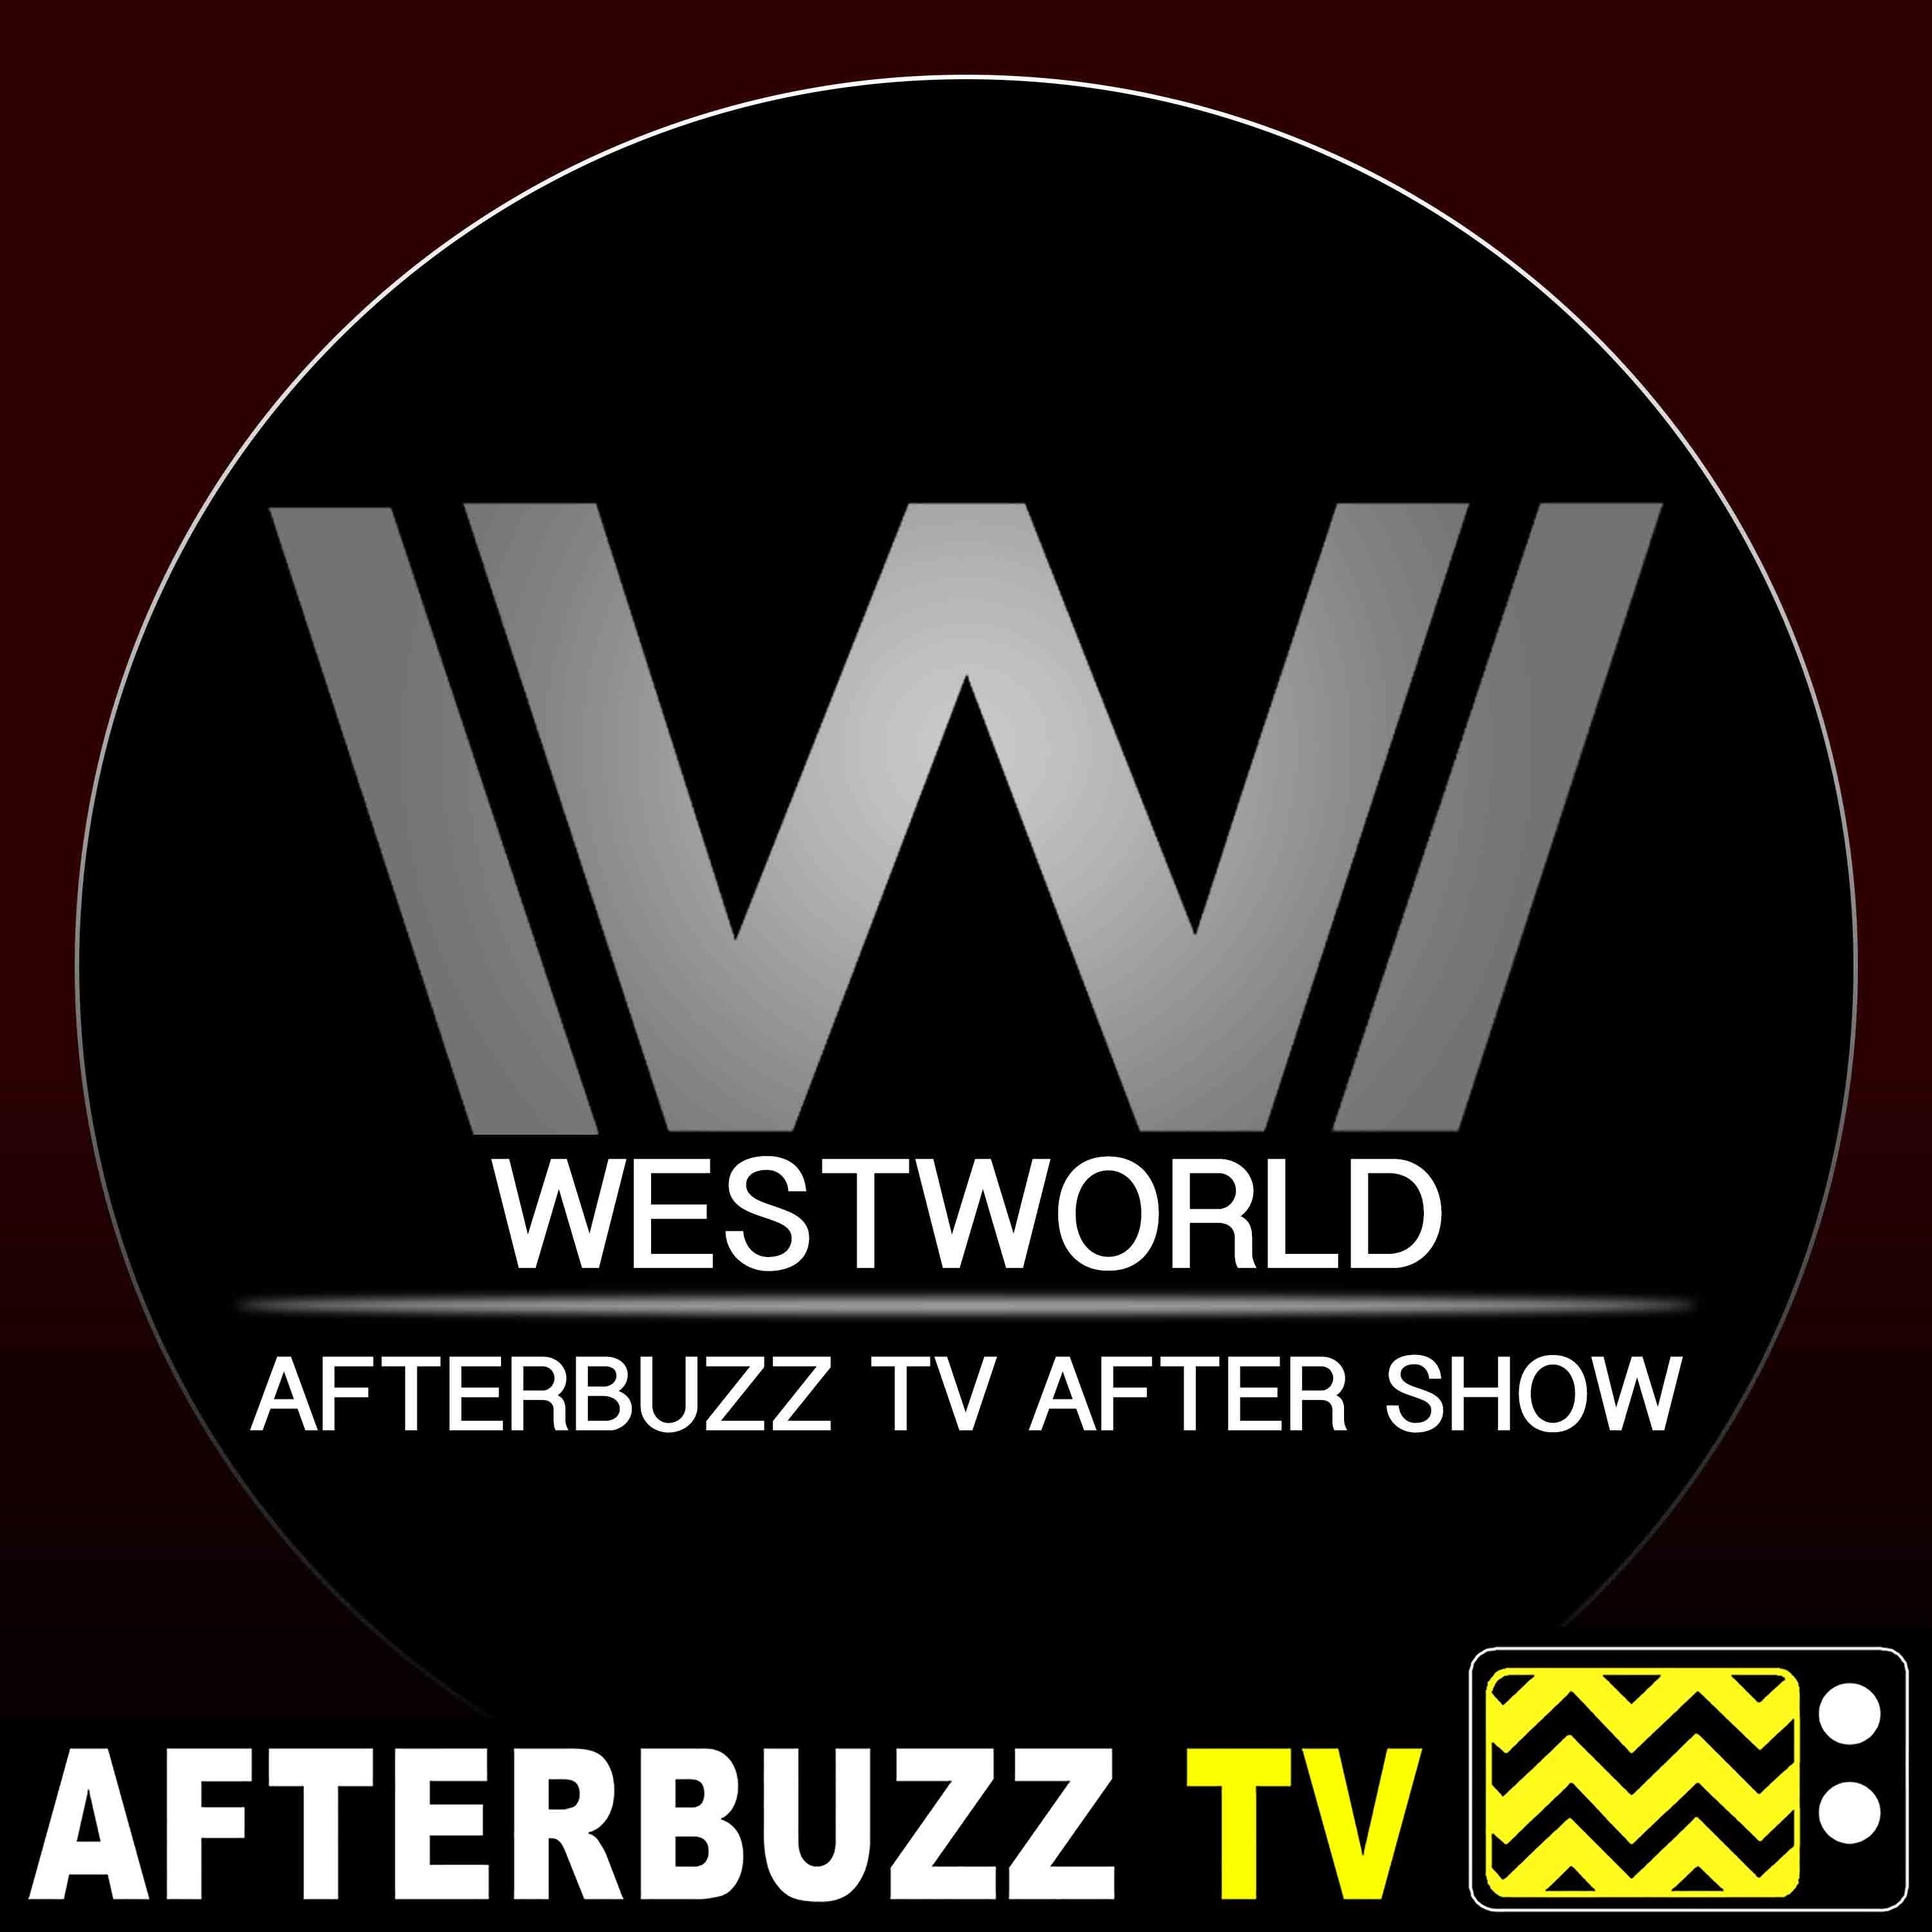 Westworld S:2 | Akane no Mai E:5 | AfterBuzz TV AfterShow